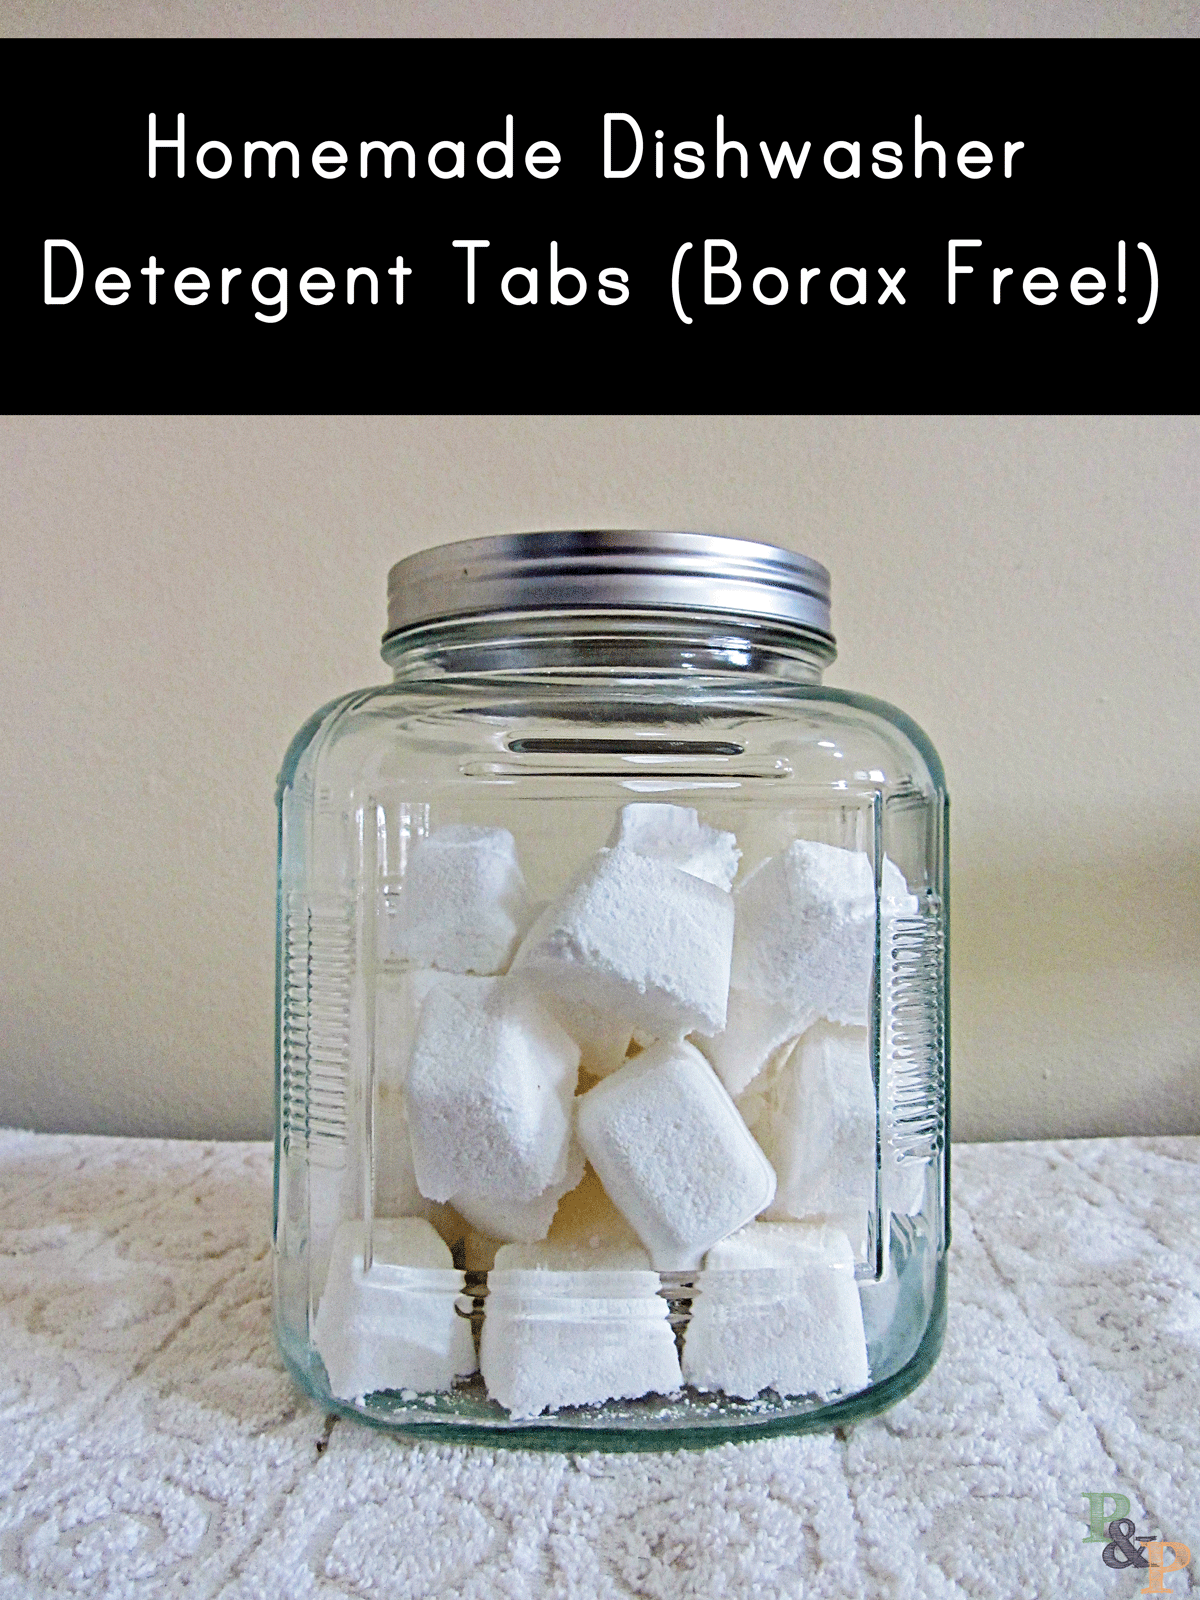 Homemade Dishwasher Detergent Tabs (Borax Free!) - Pins and